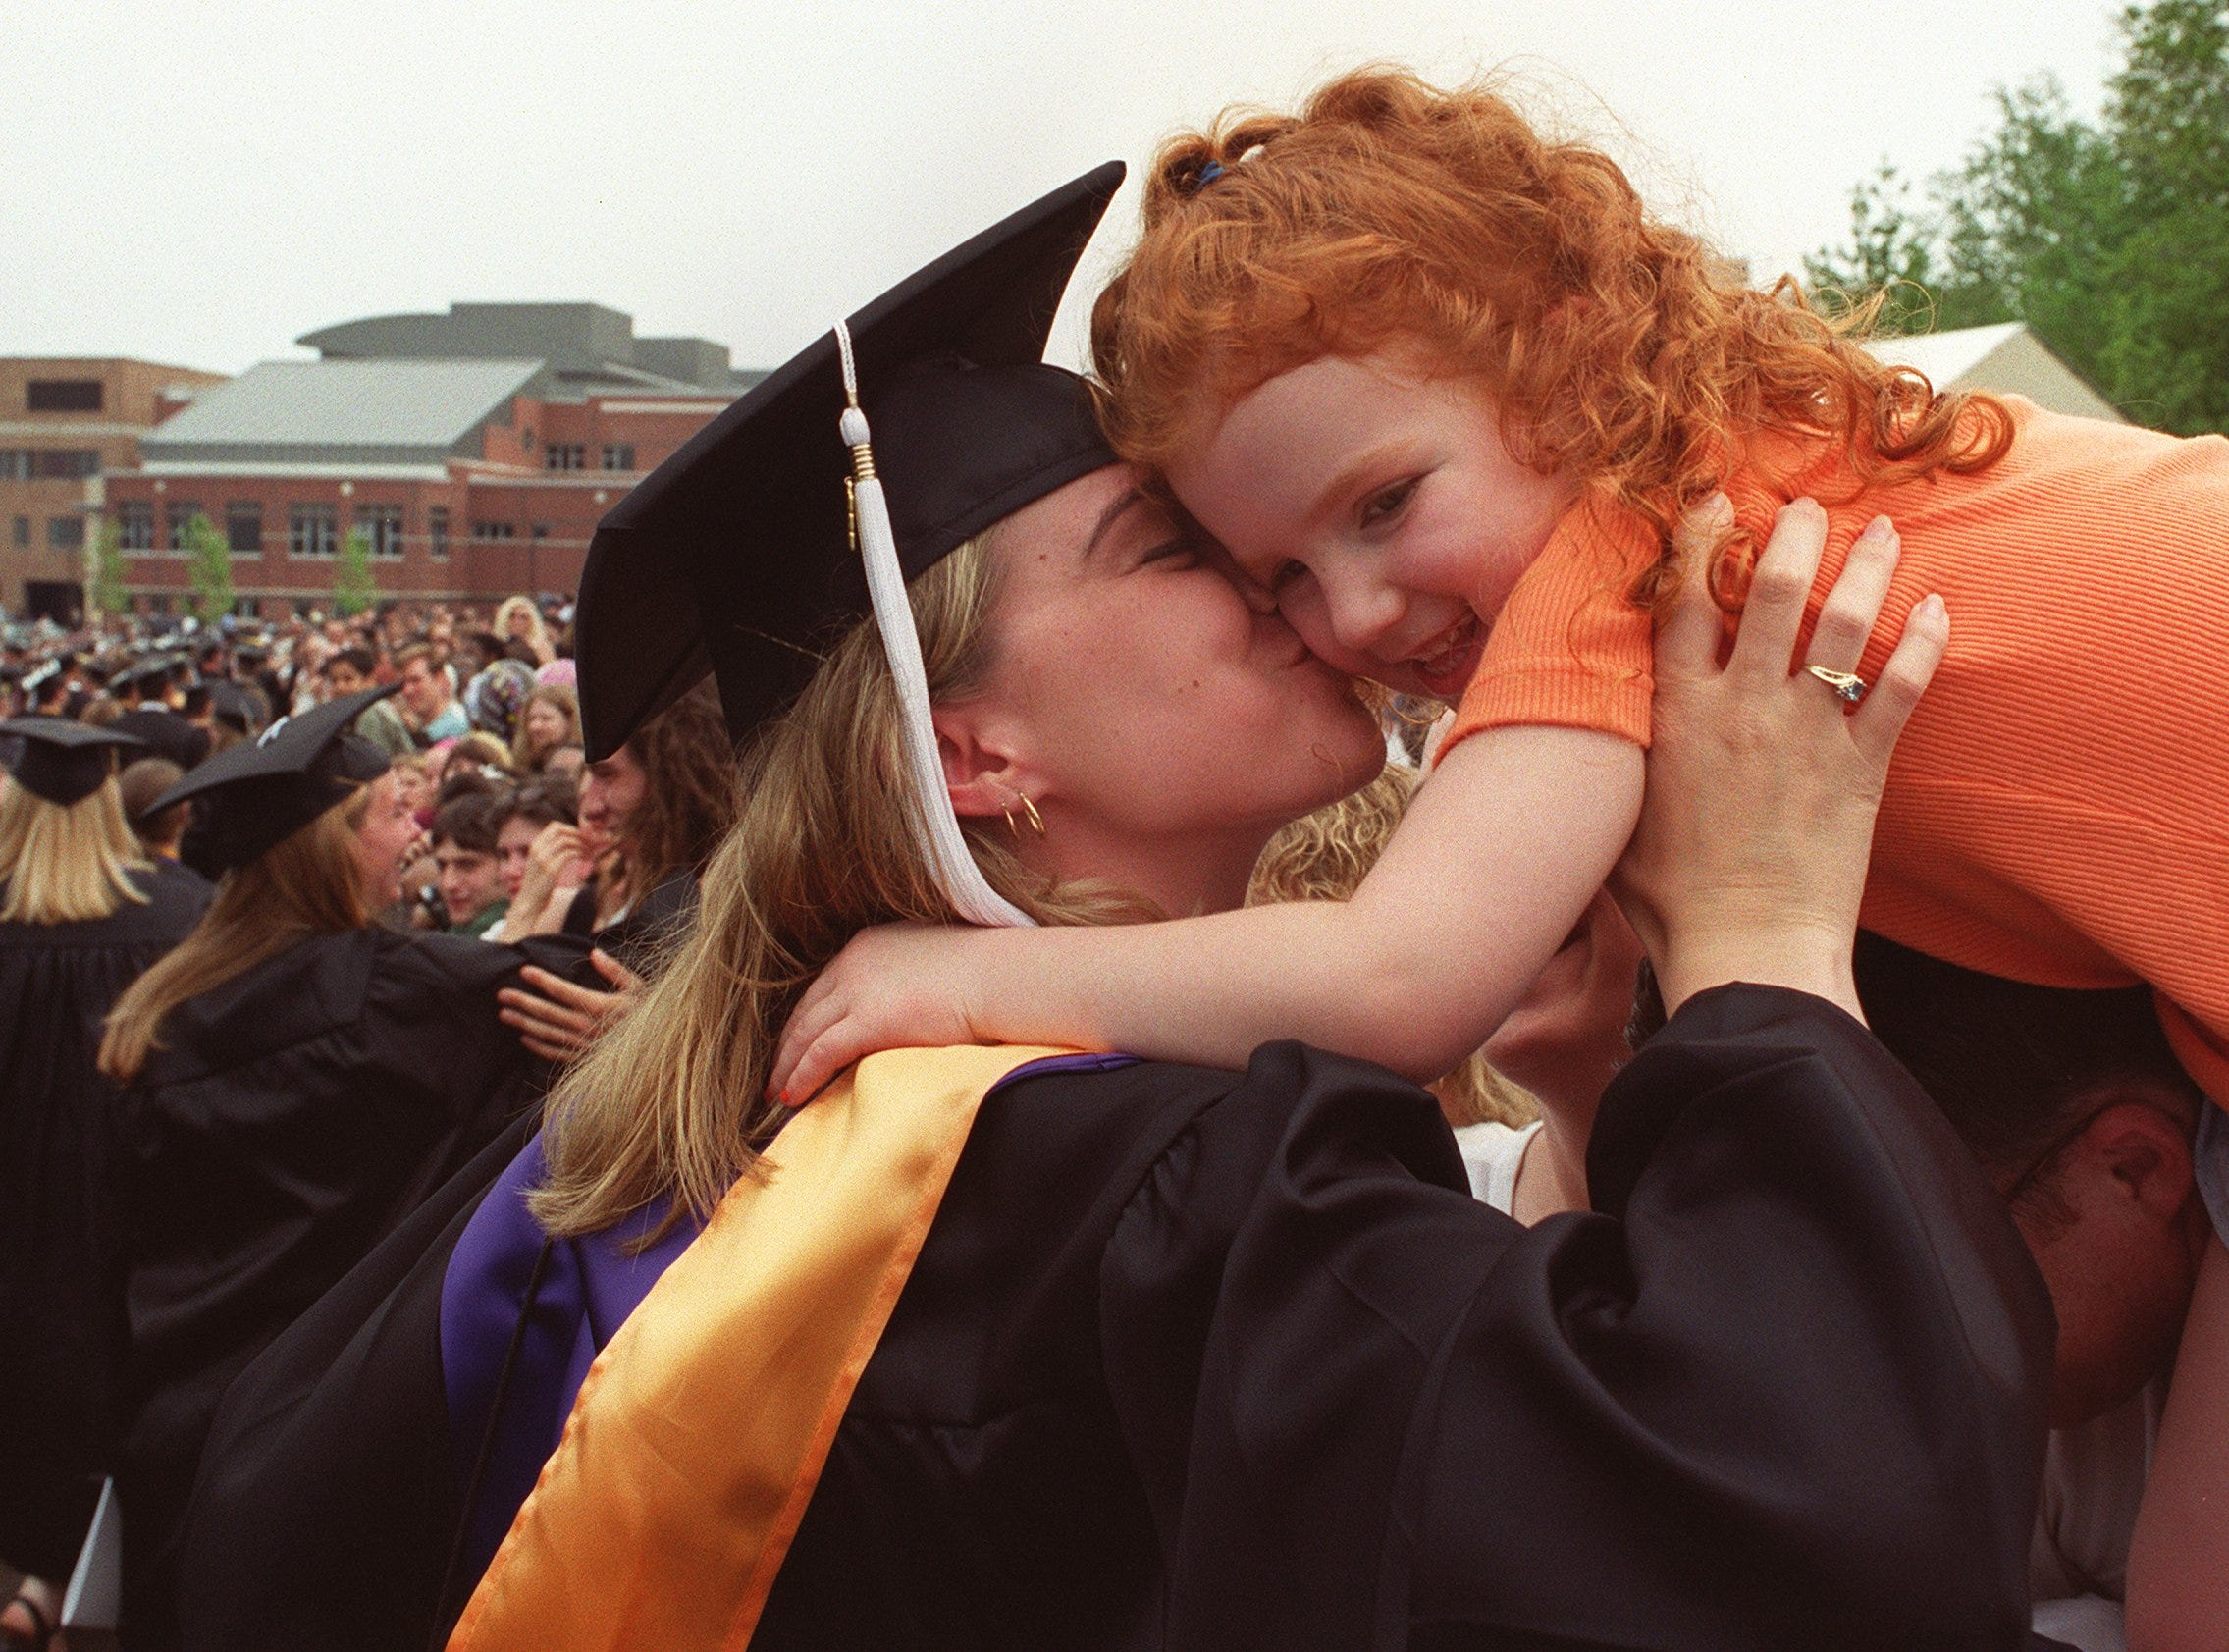 2000: Ithaca College graduate Amanda Parsons, left, gives Abigail Nickles a kiss at the end of commencement ceremonies Saturday. Parsons baby-sat for Nickles from the time she was an infant.